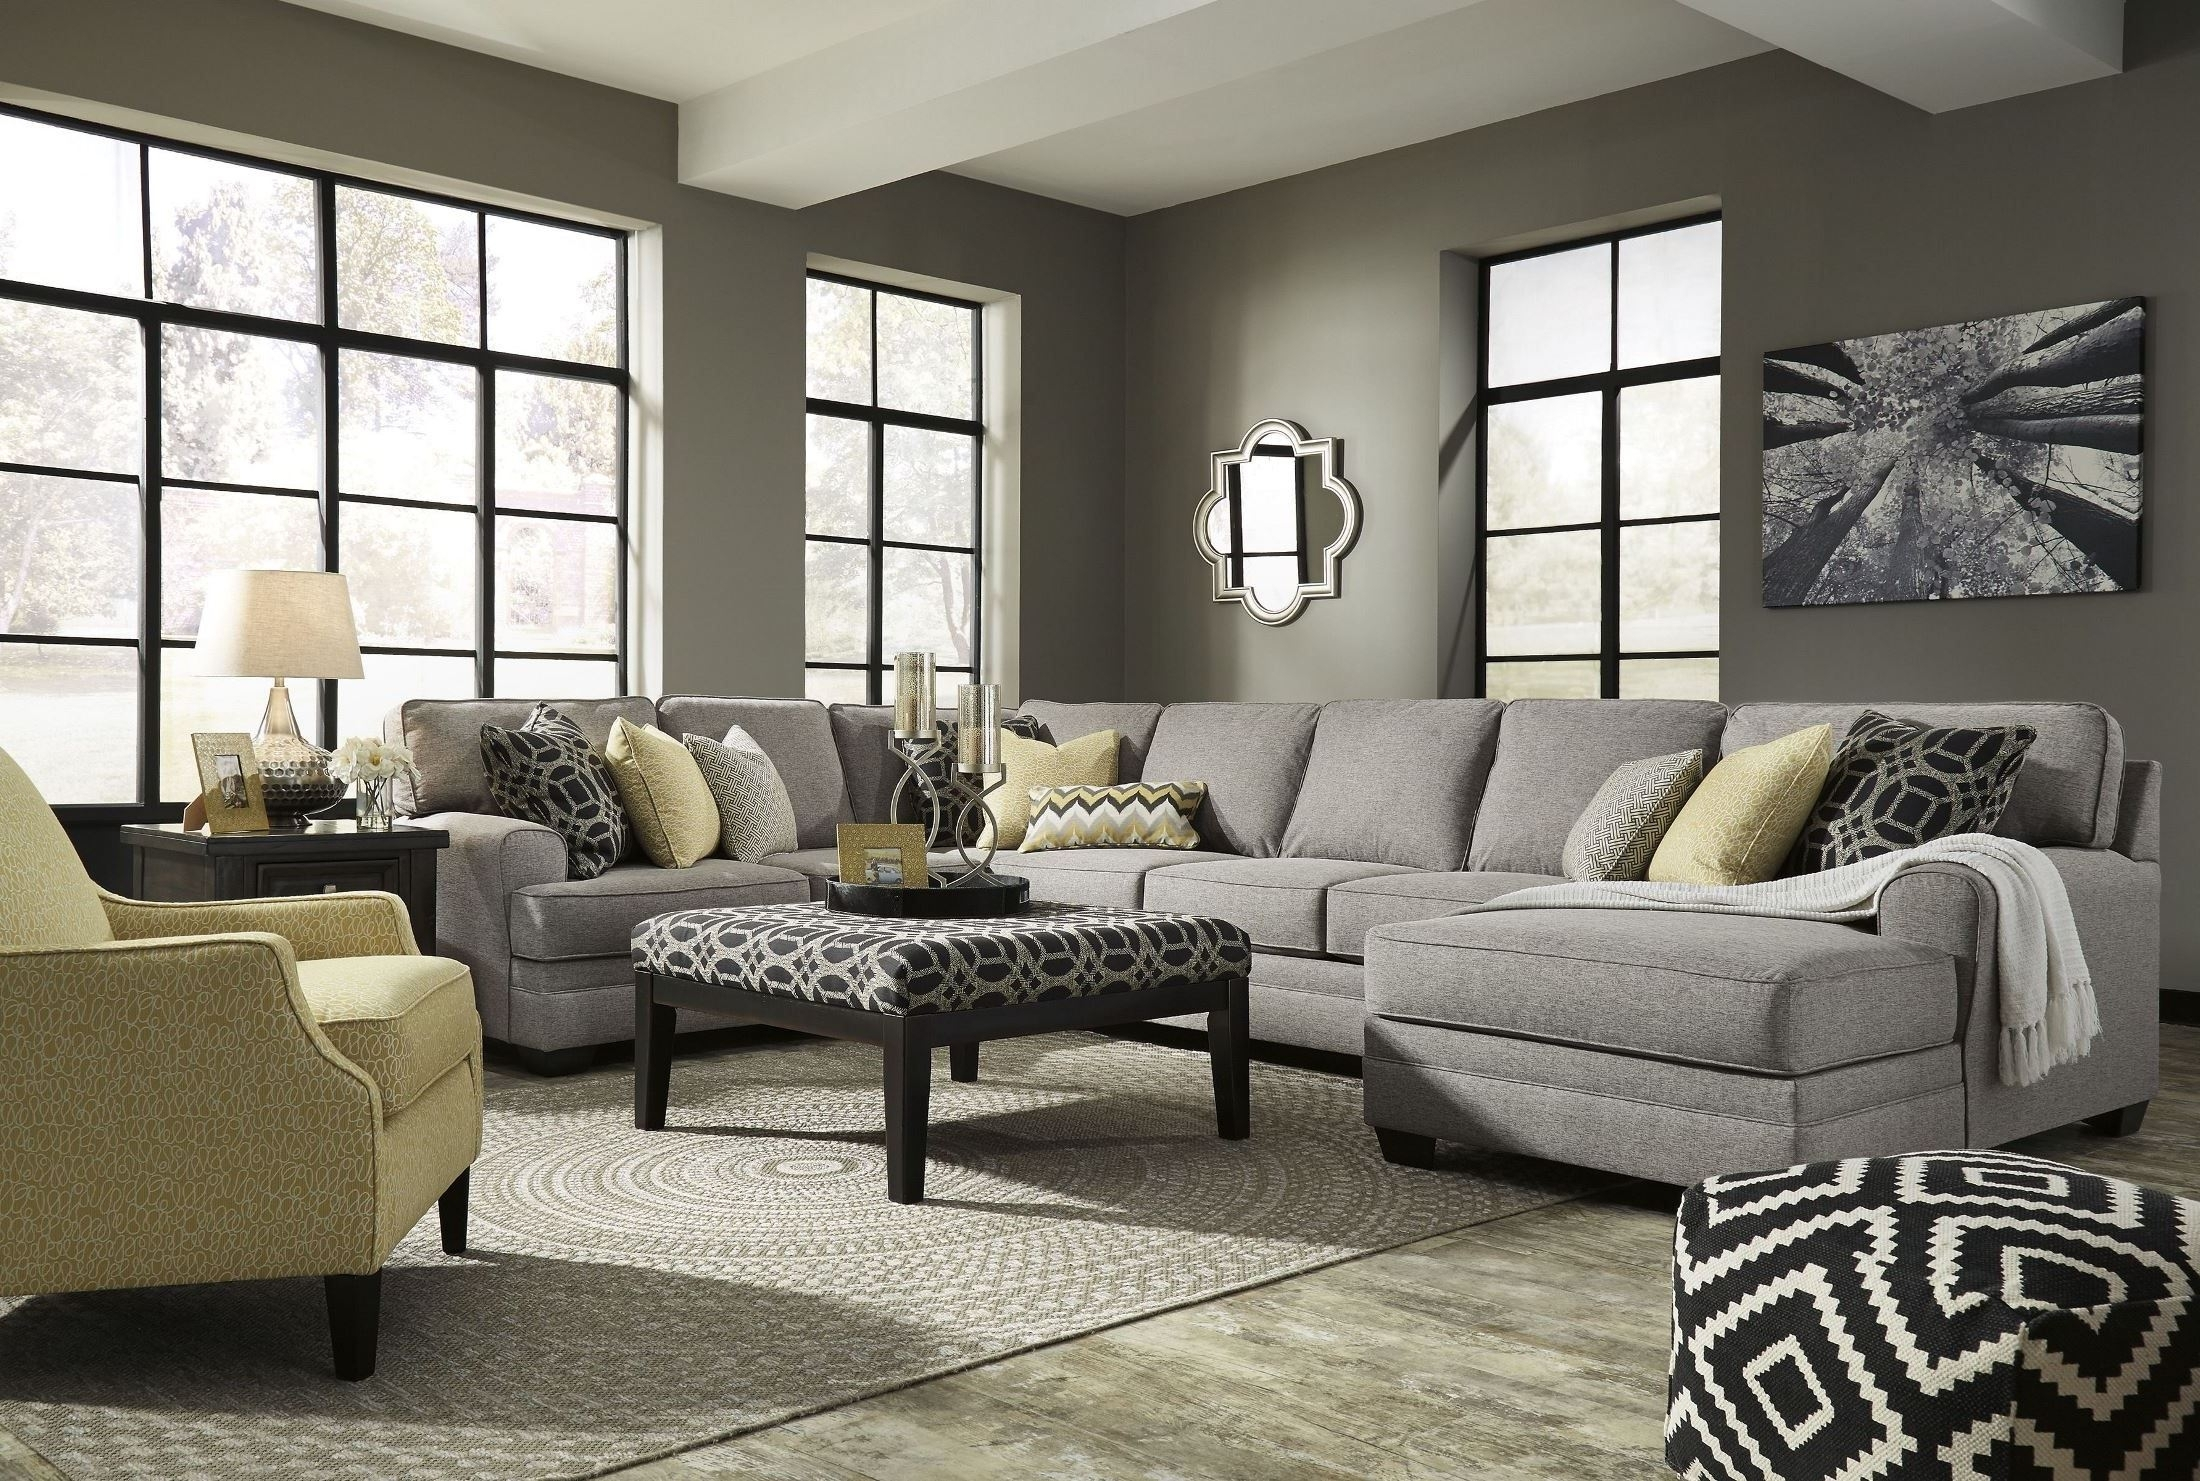 Large Chaise Sofas | Baci Living Room For Delano 2 Piece Sectionals With Raf Oversized Chaise (Image 19 of 25)